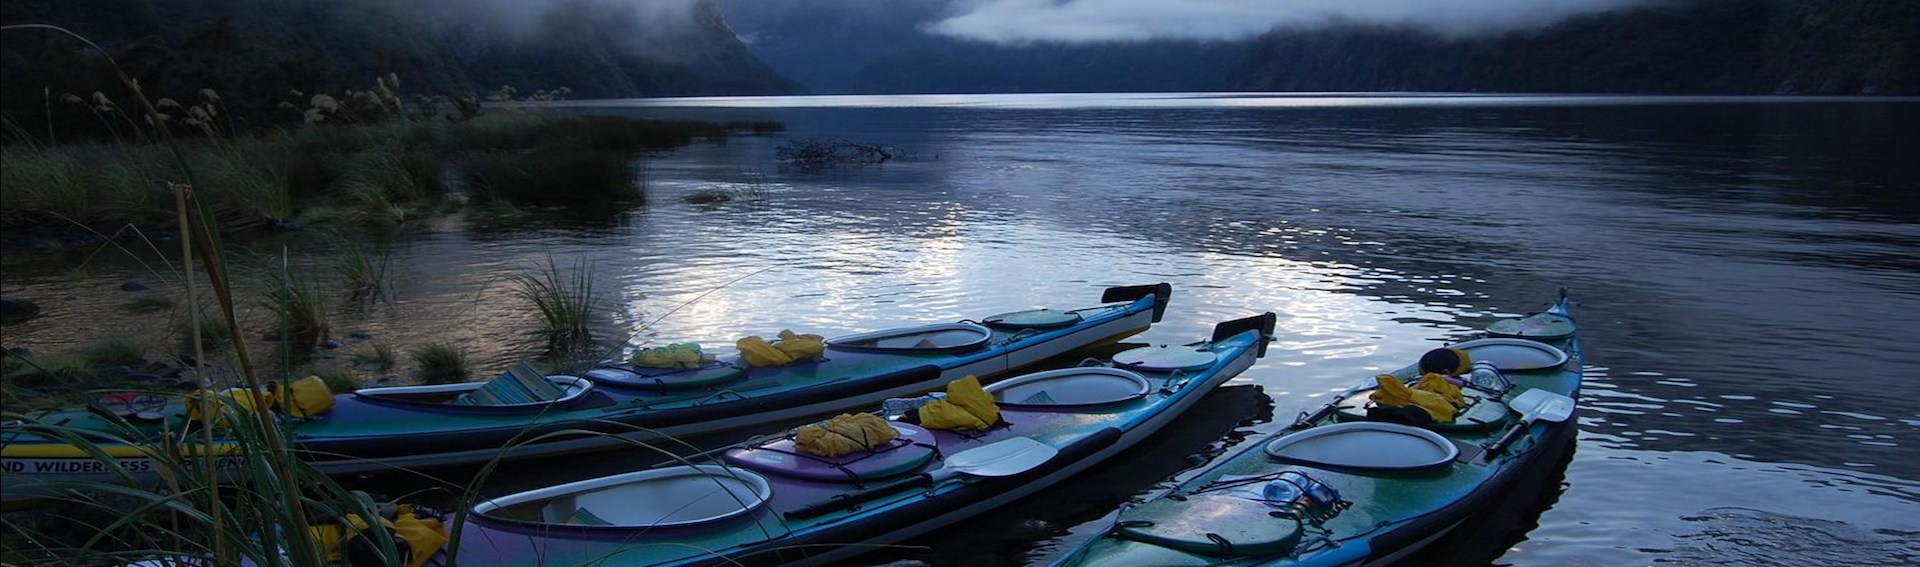 Doubtful Sound 5 Day Sea Kayak Expedition